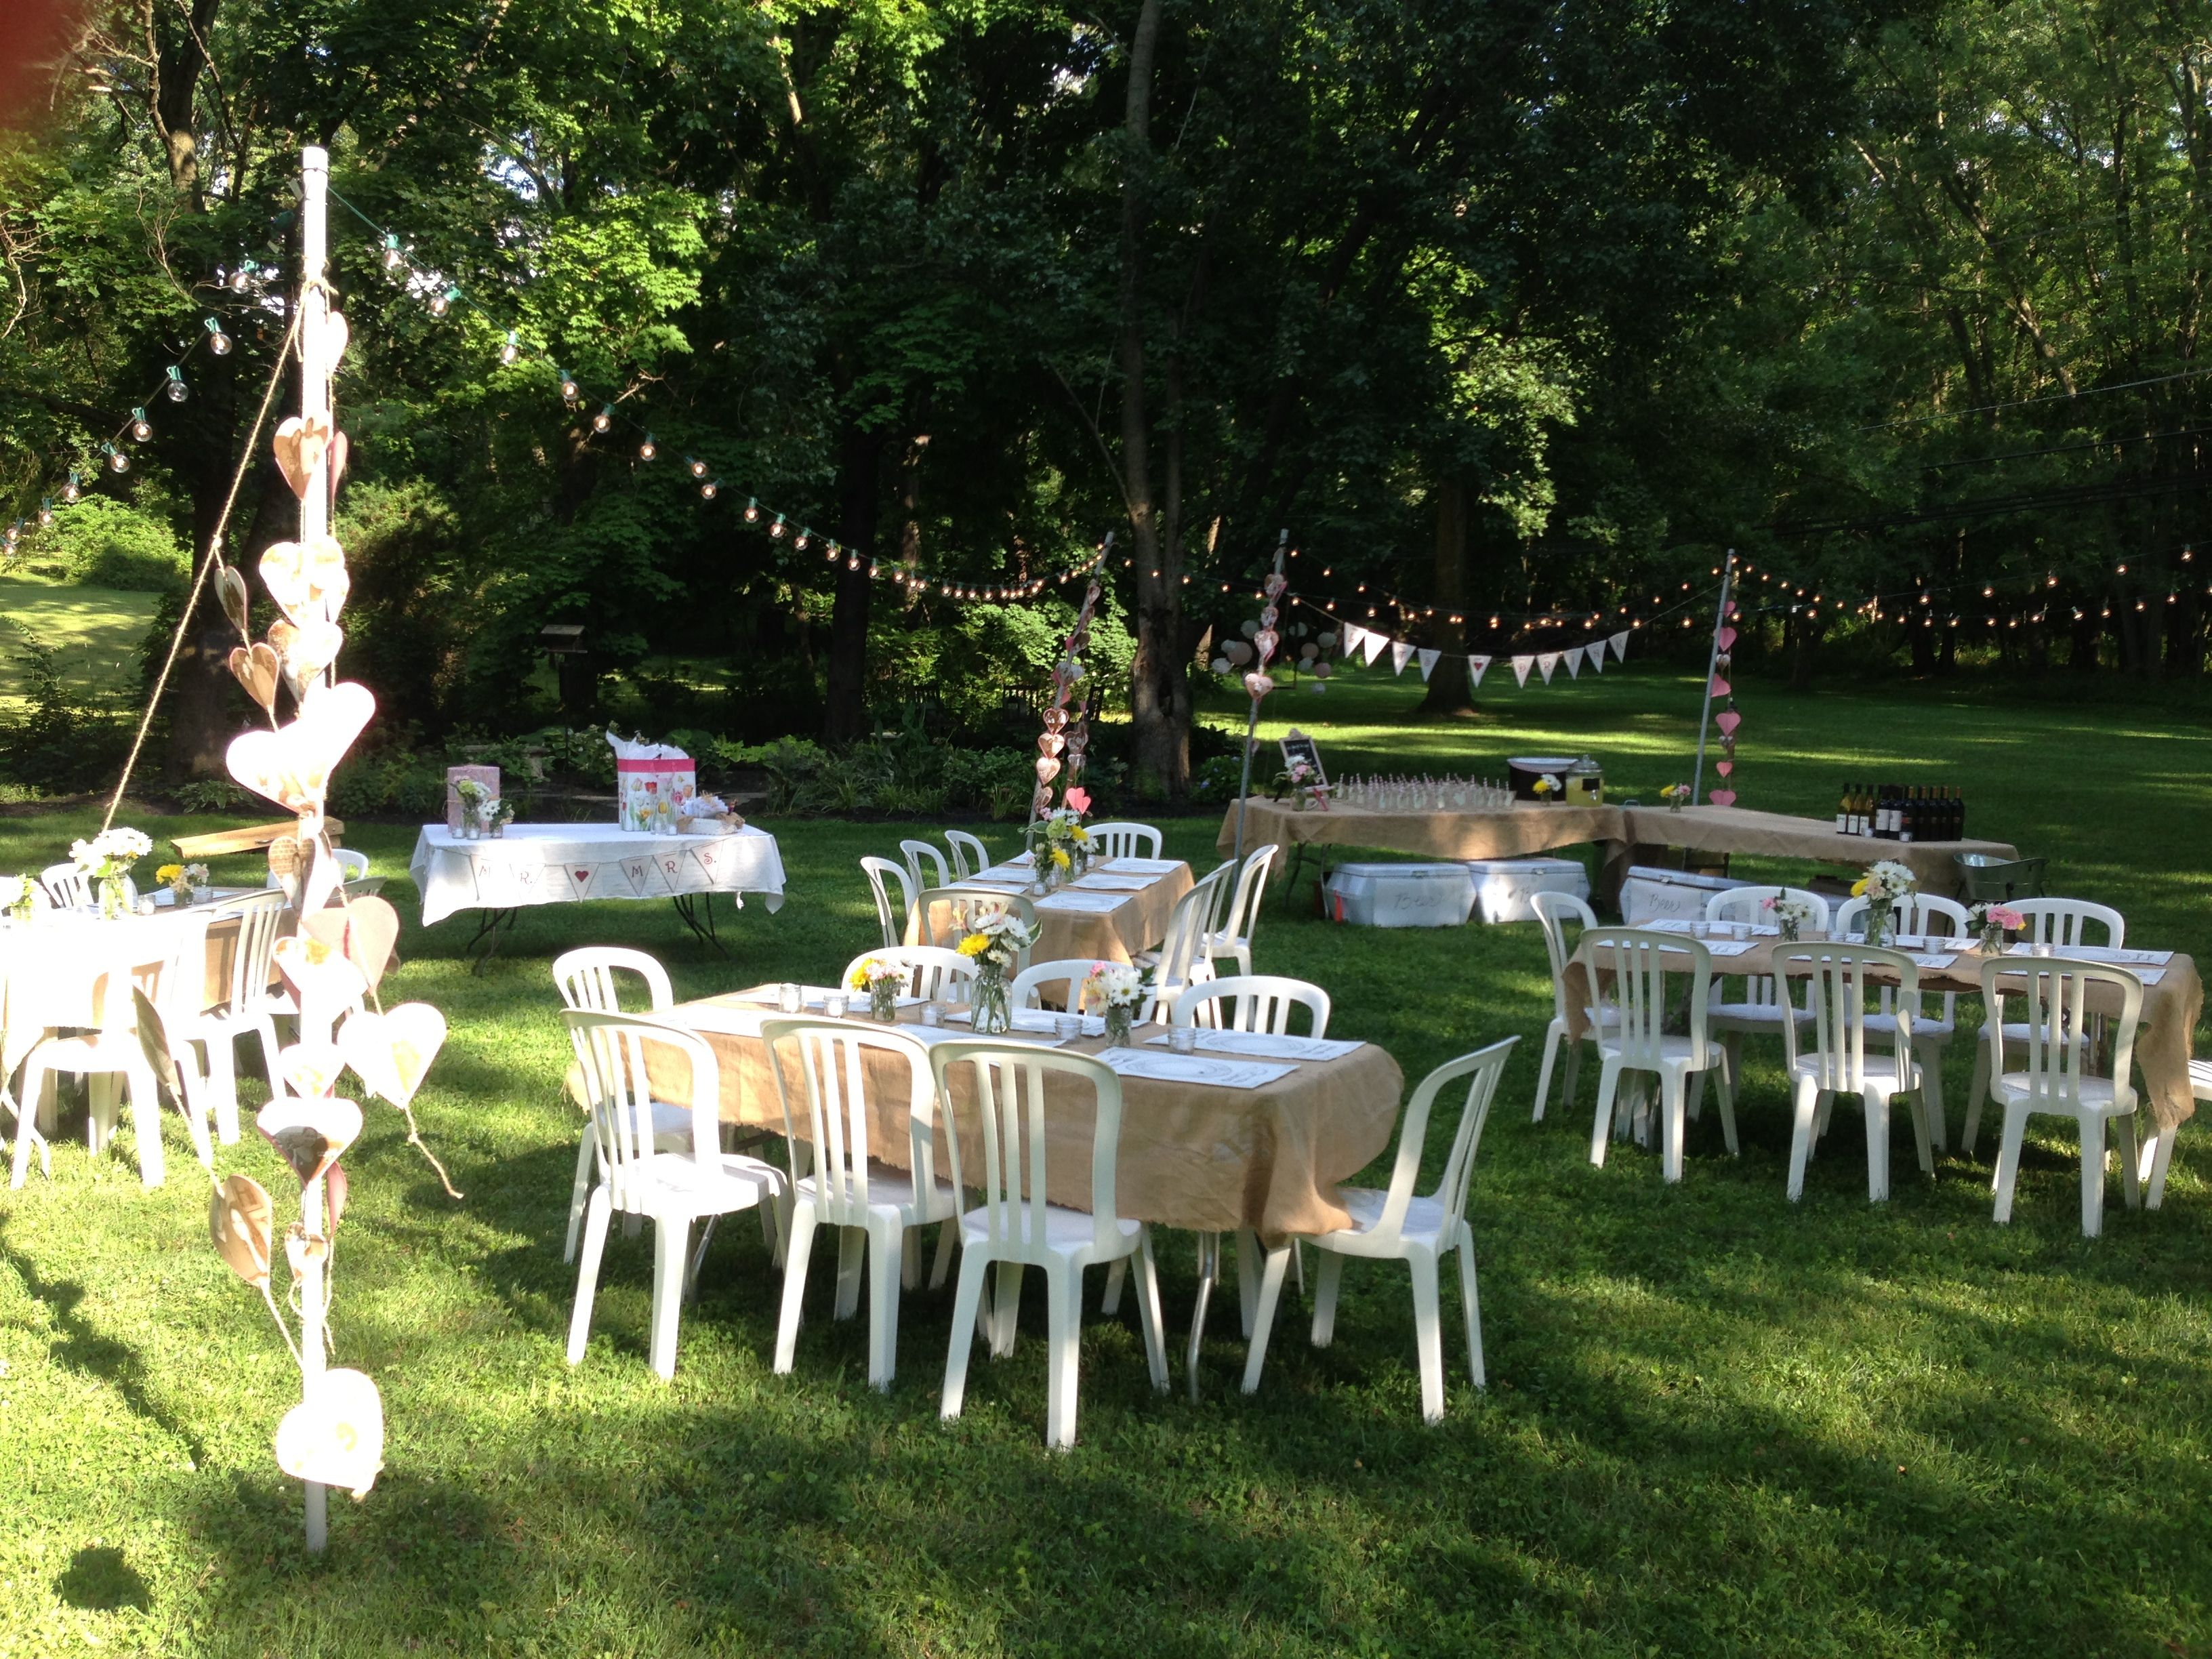 Light tent for backyard wedding shower (With images ...